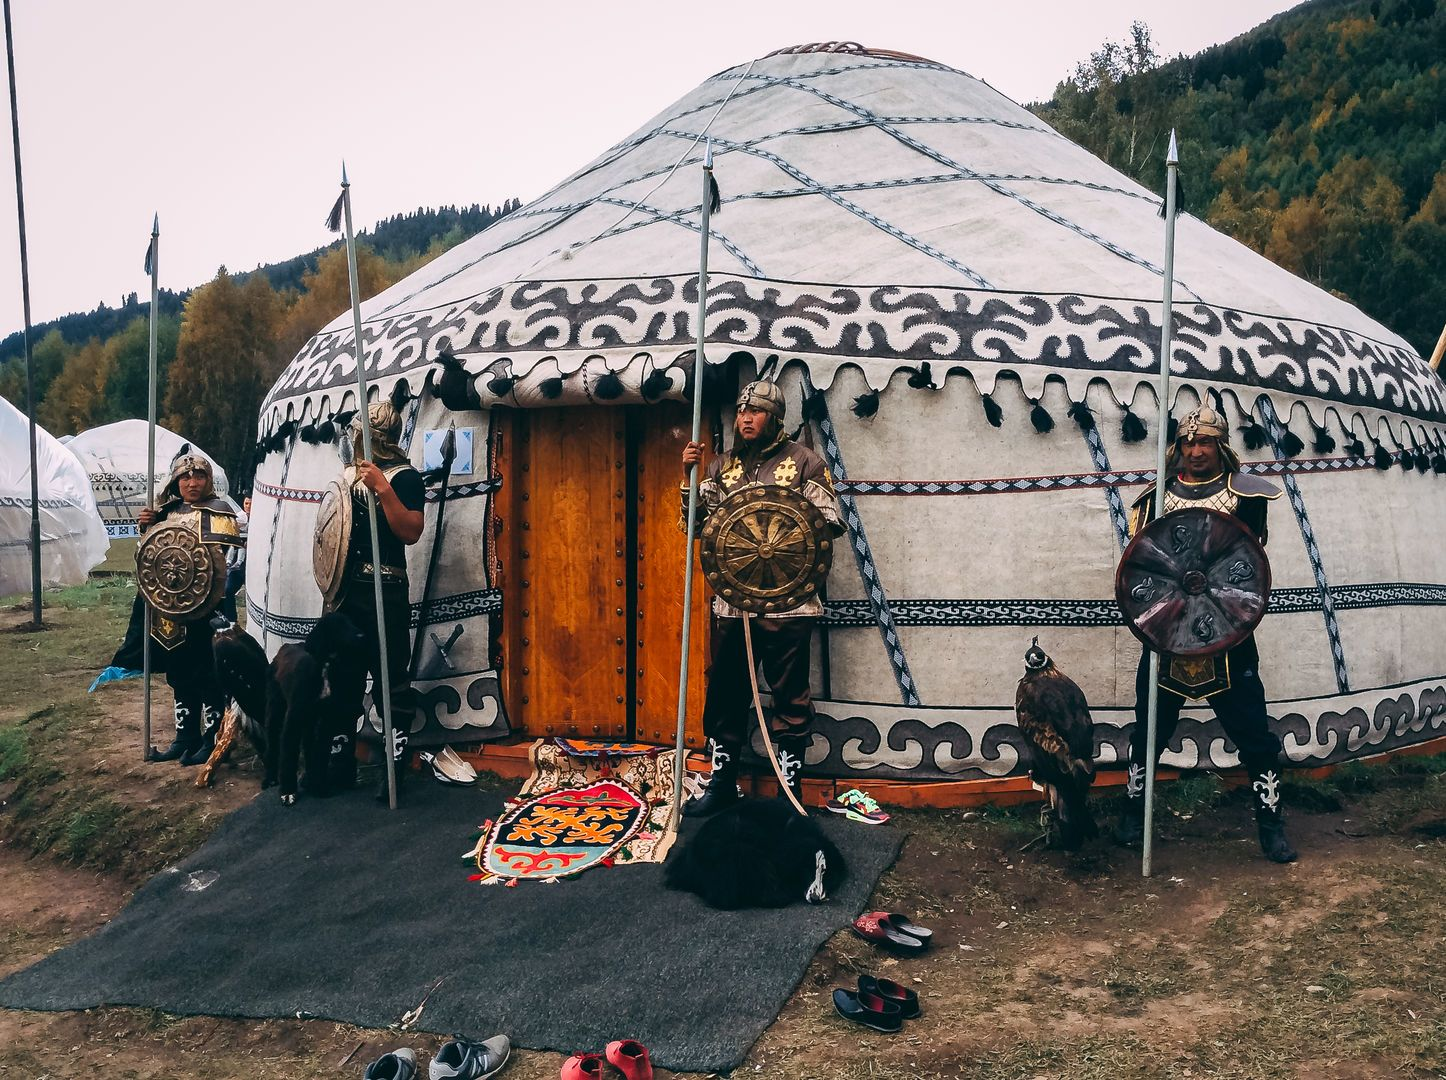 World nomad games yurt